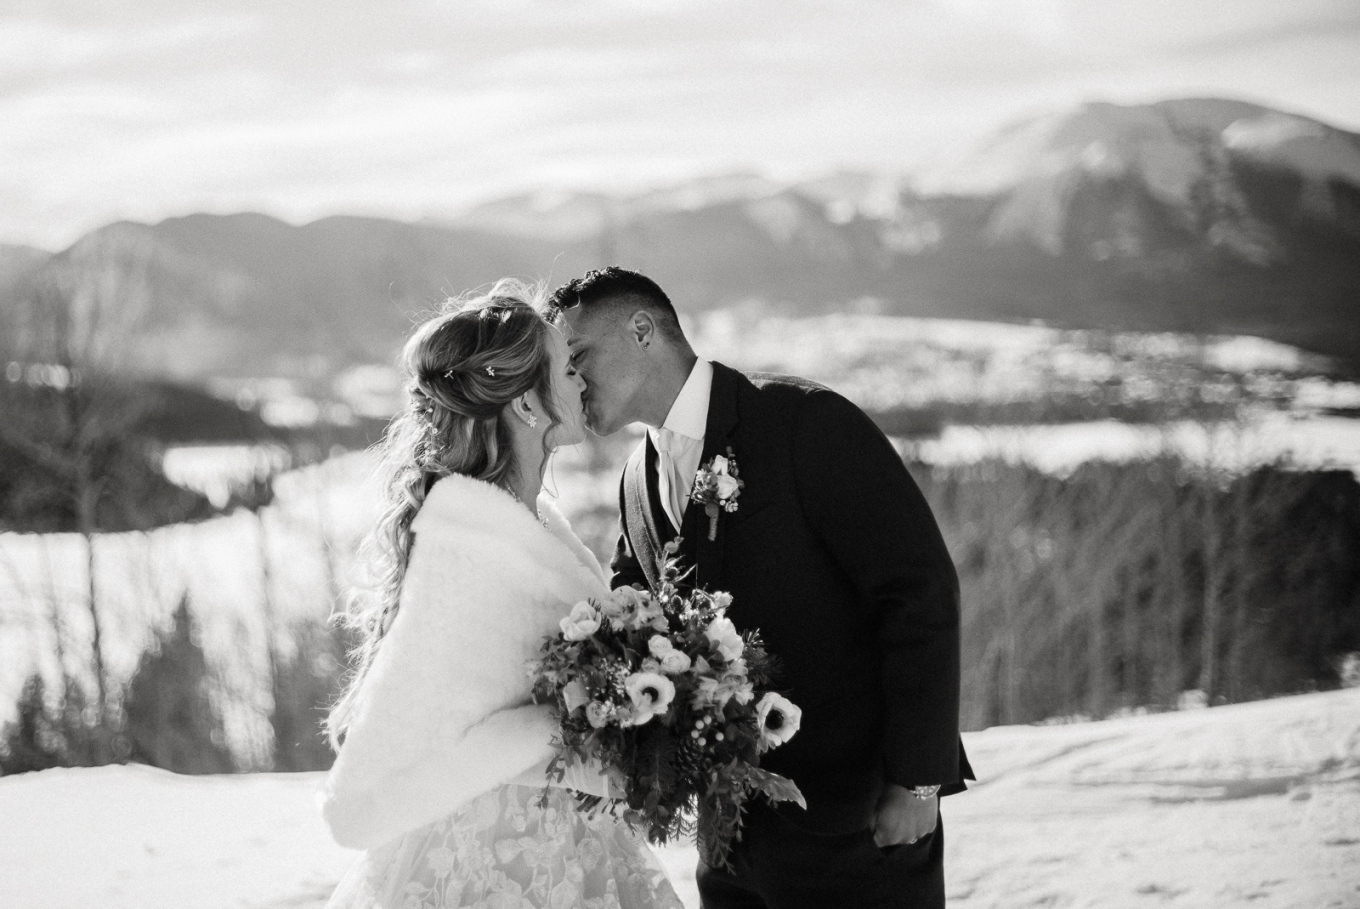 winter wedding in black and white